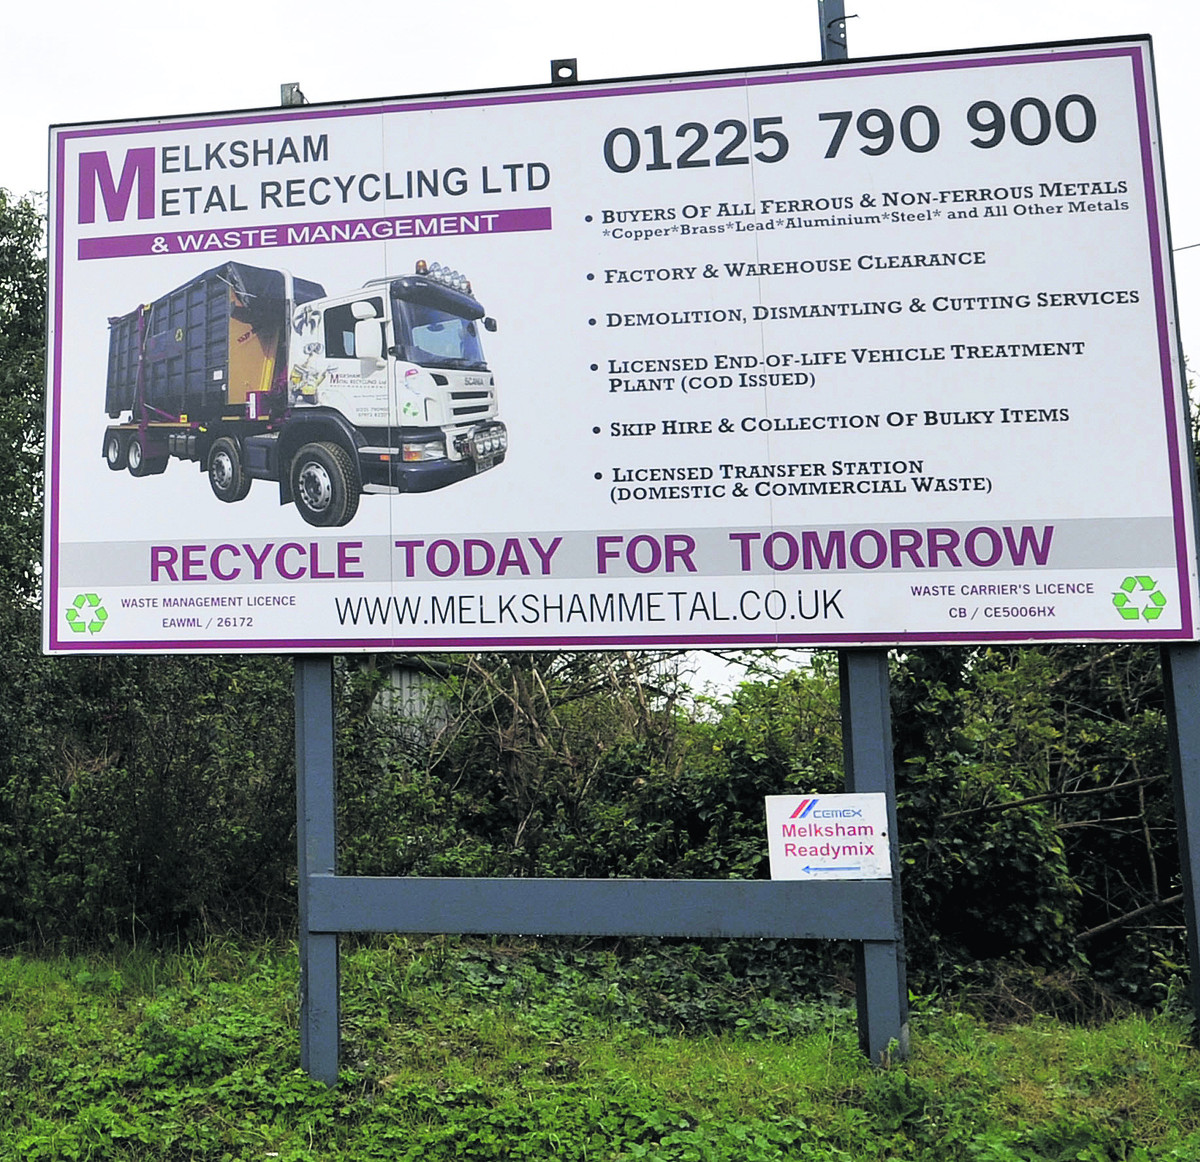 Melksham Metal Recycling's premises